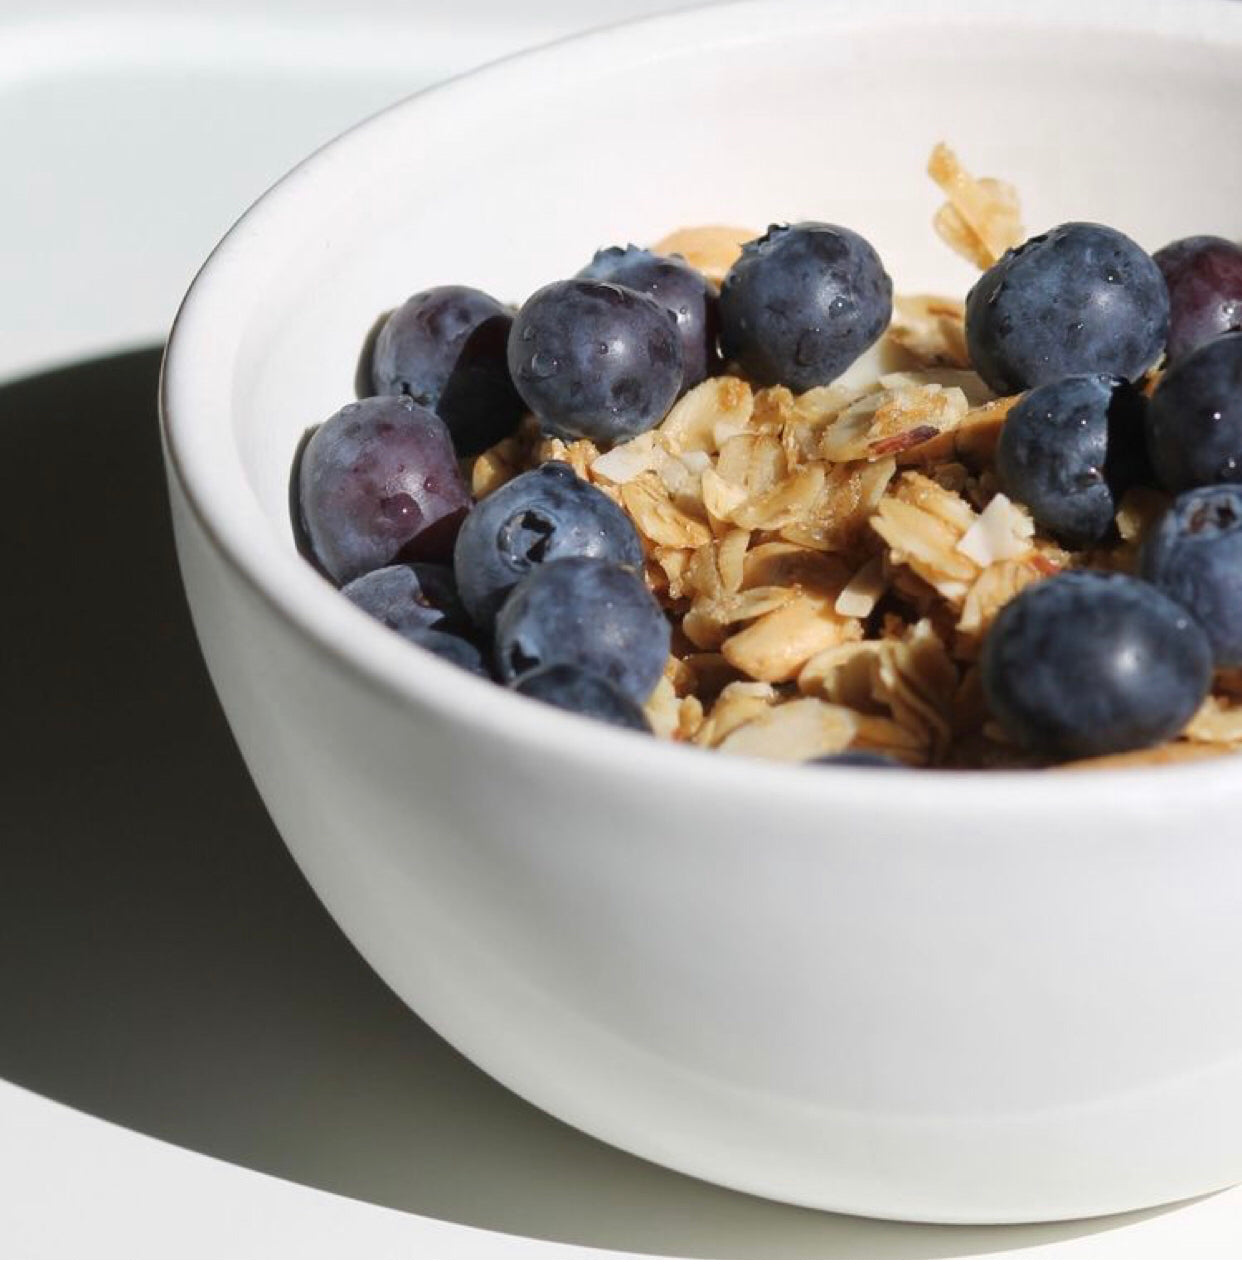 GLUTEN FREE CEREAL BOWL